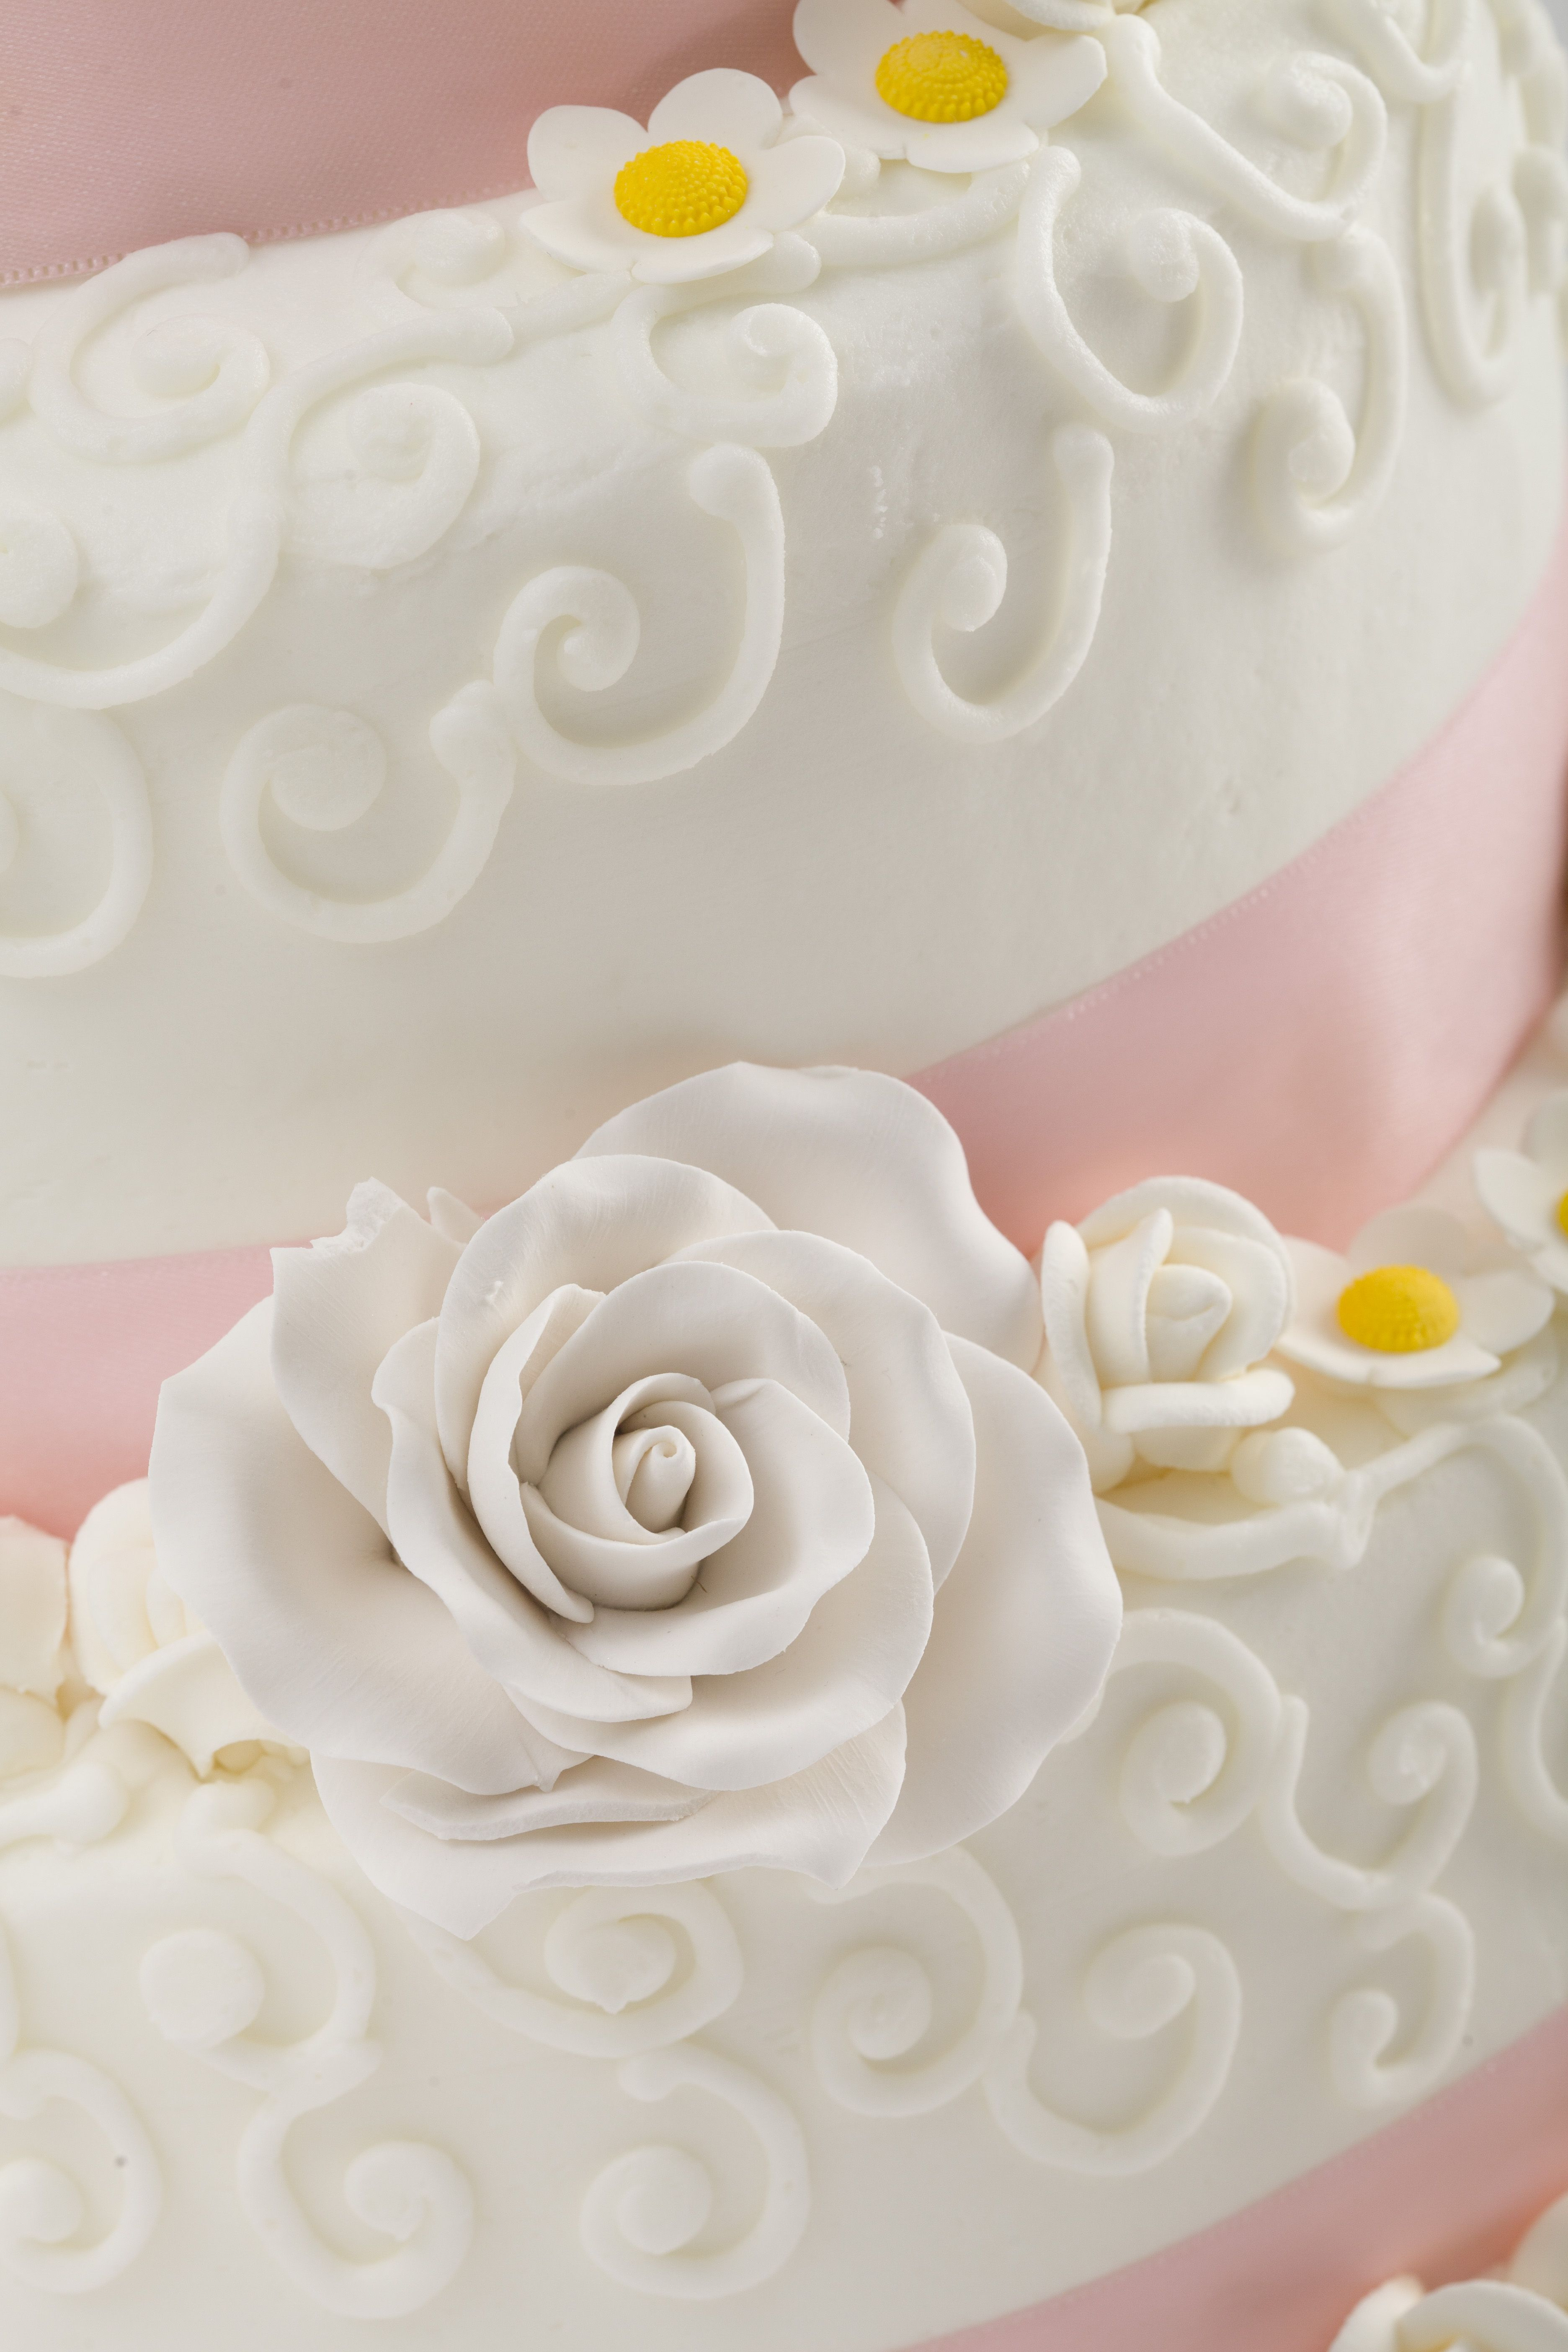 Sweet Heart Close Up From Martin S Bake Shoppe Special Occasion Wedding Reception Occasion